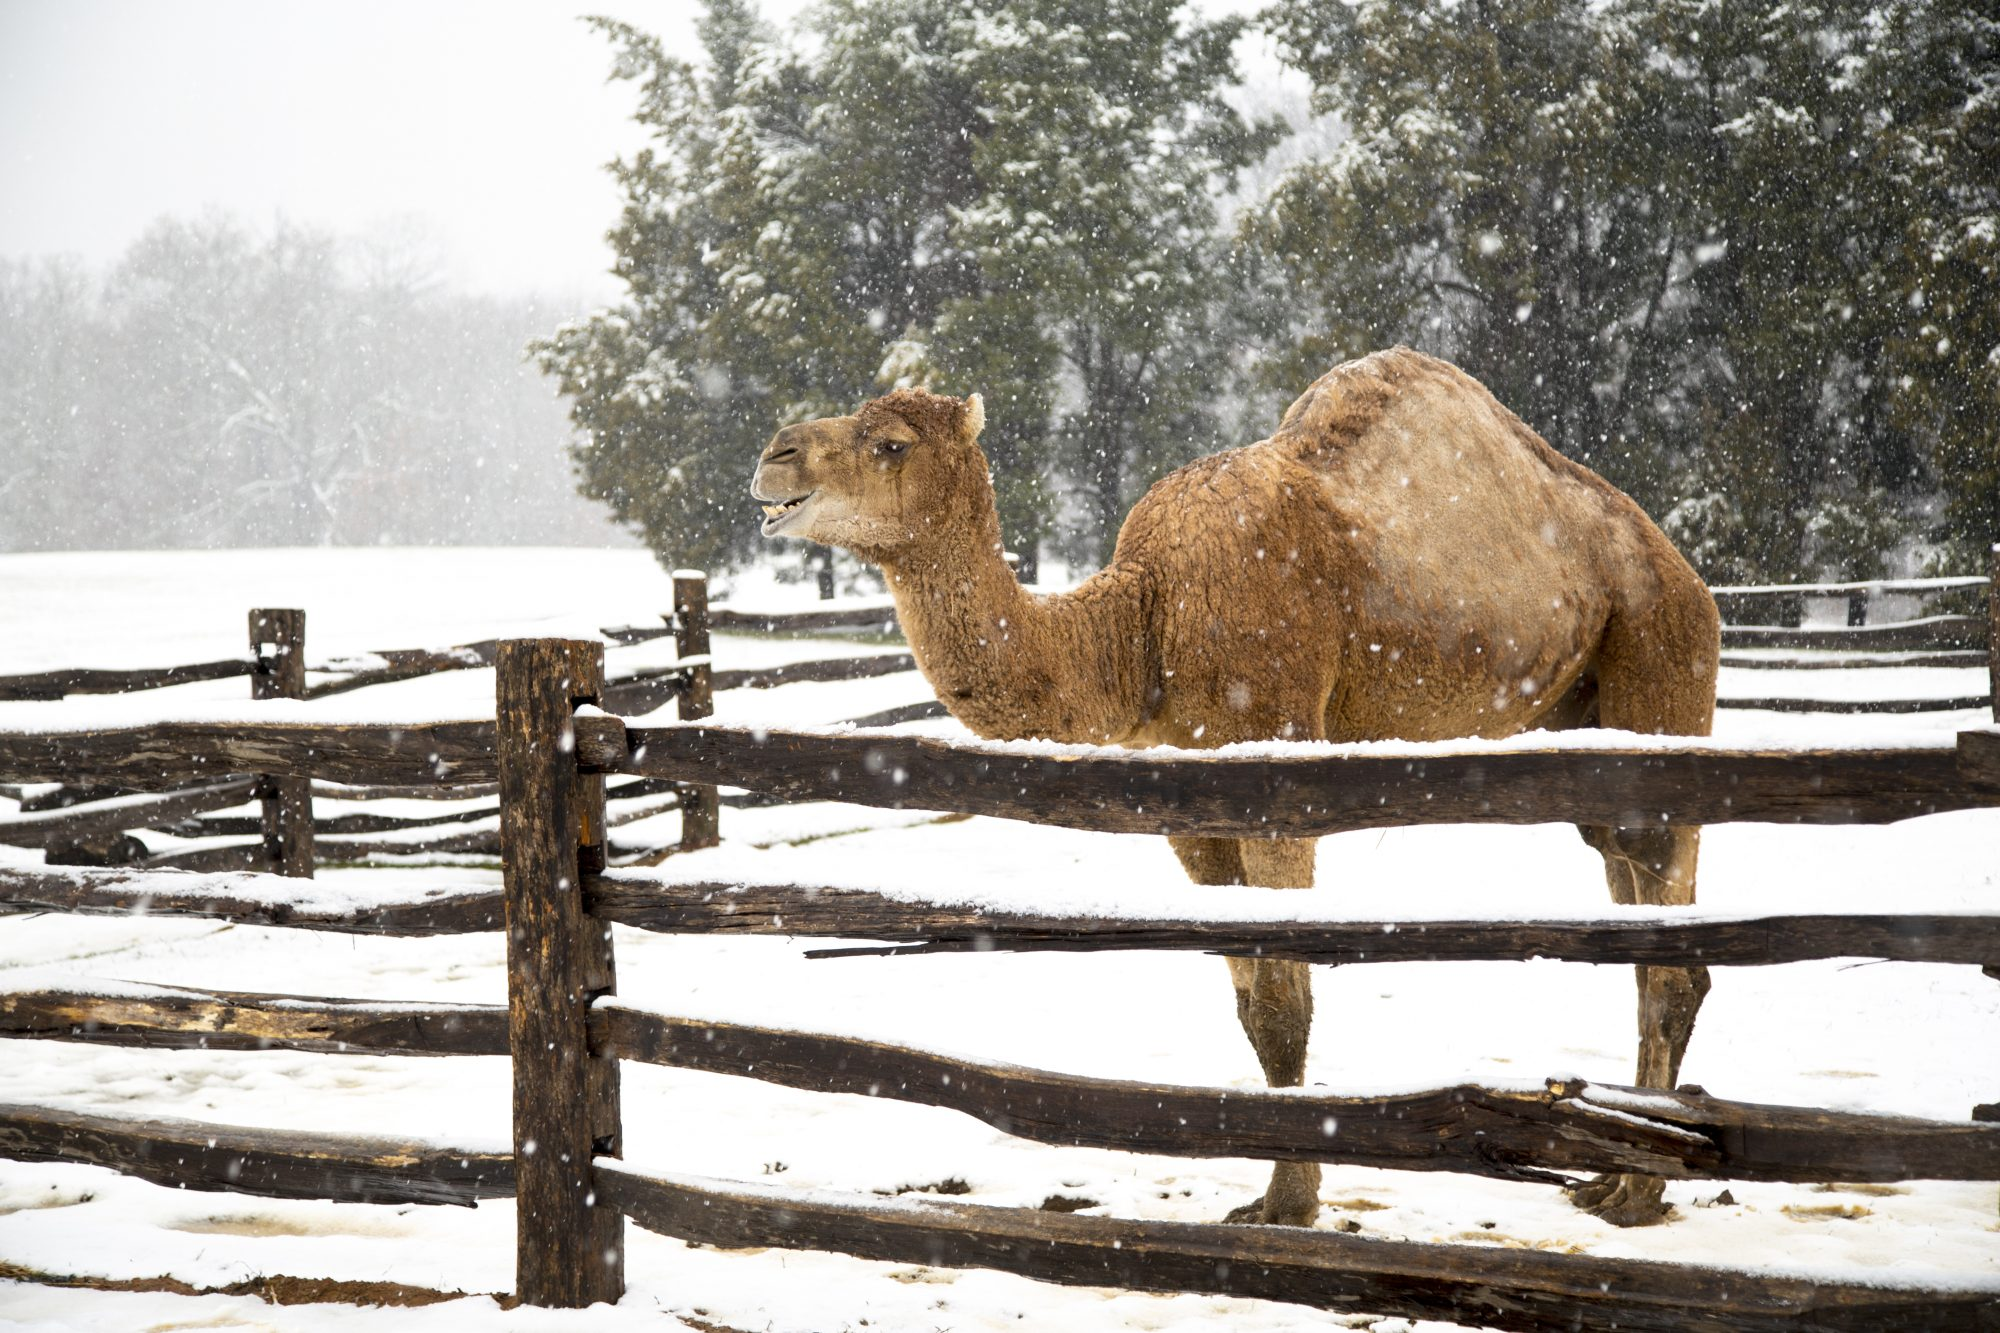 Aladdin the Mount Vernon Camel Enjoying the Snow